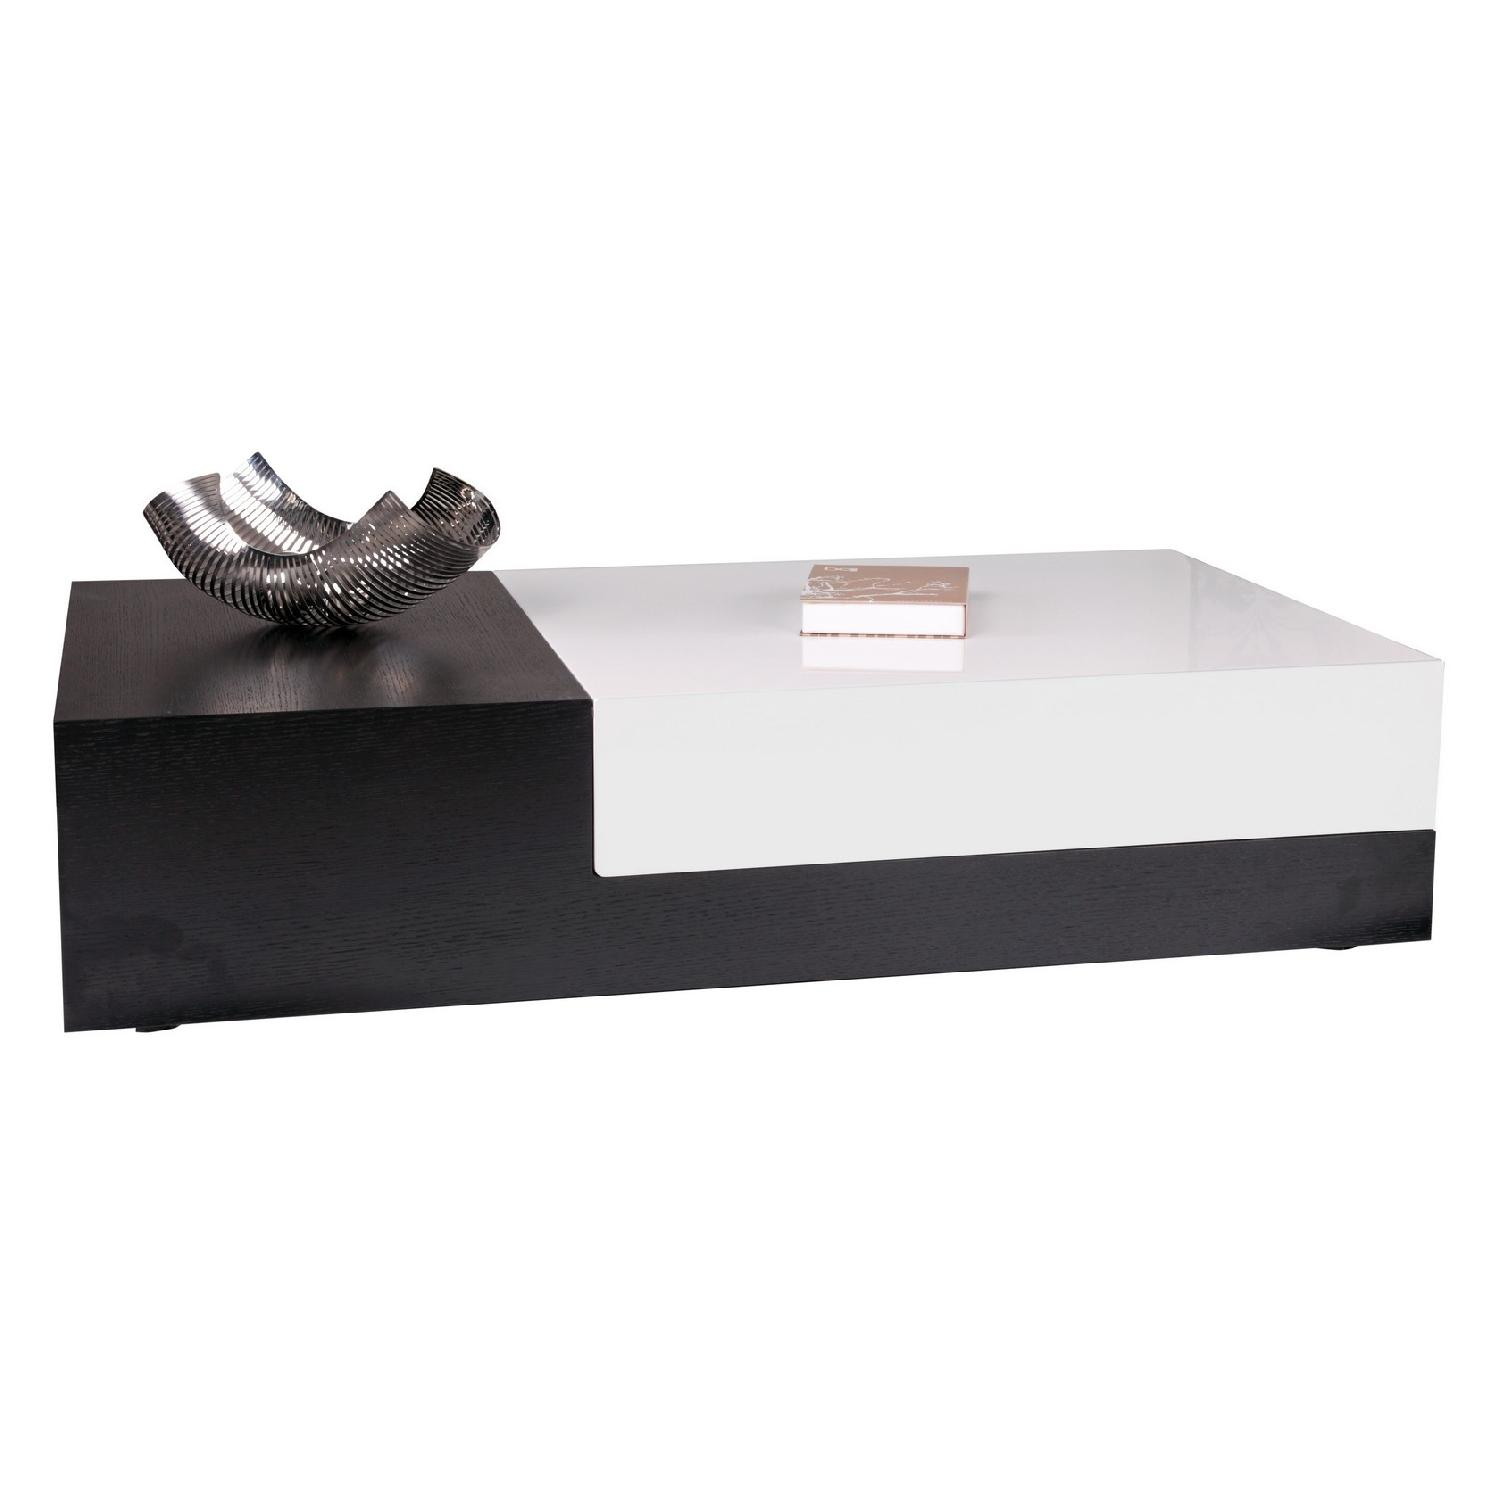 Modern 2-Tone Black Oak-High Gloss White Coffee Table w/ Slide-Out Storage Compartment